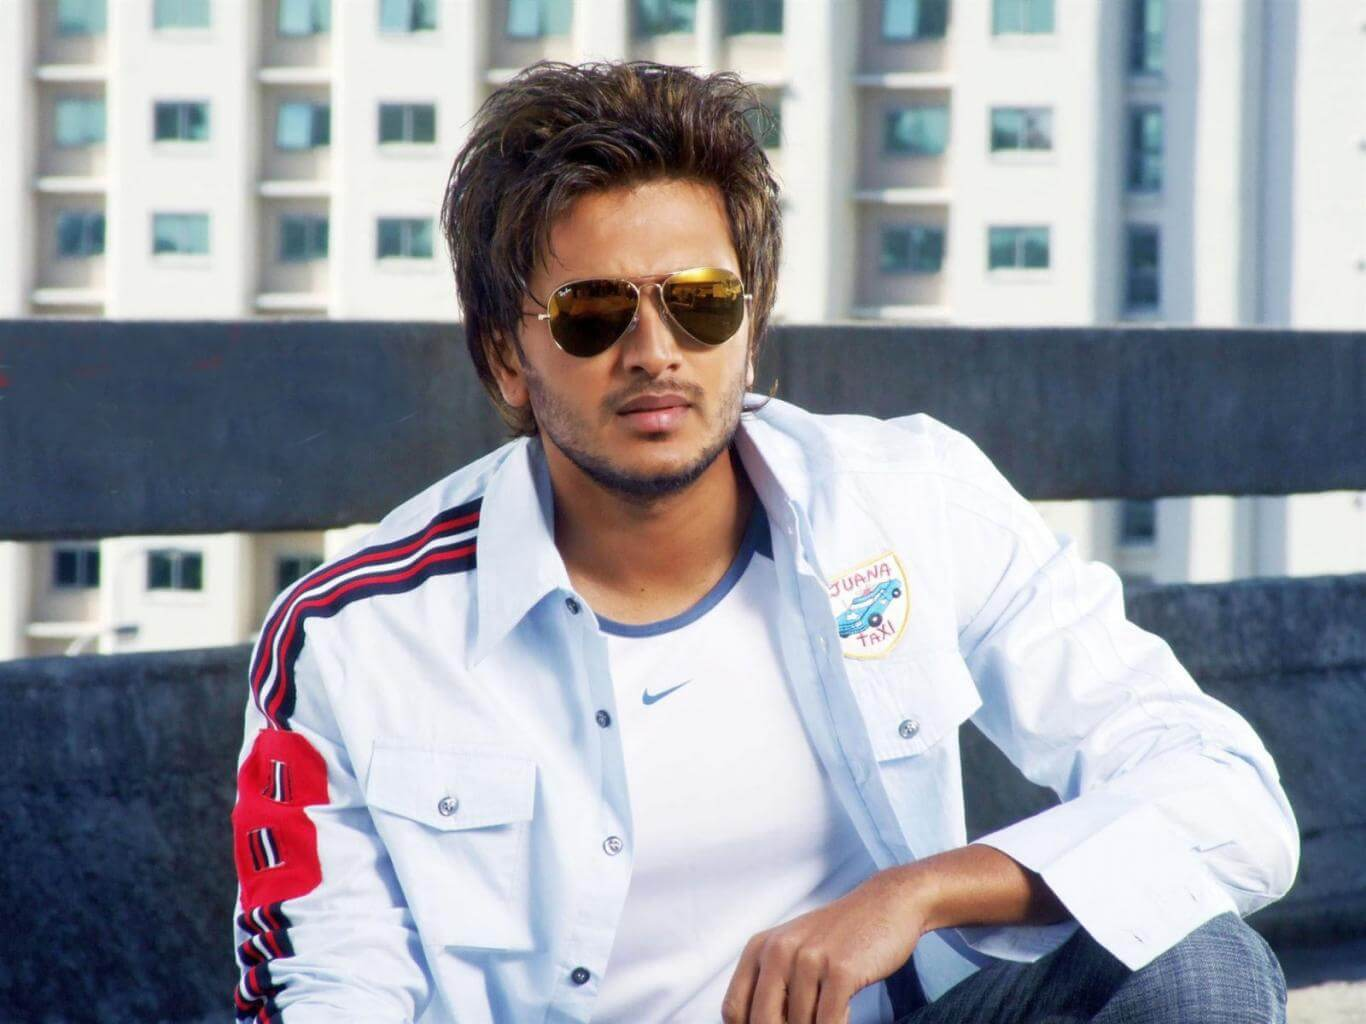 Riteish Deshmukh wife, age, father, son, net worth, family, height, movie, biography, brother, house, images(photos), marriage, awards, education, instagram, wiki, facebook, twitter, imdb